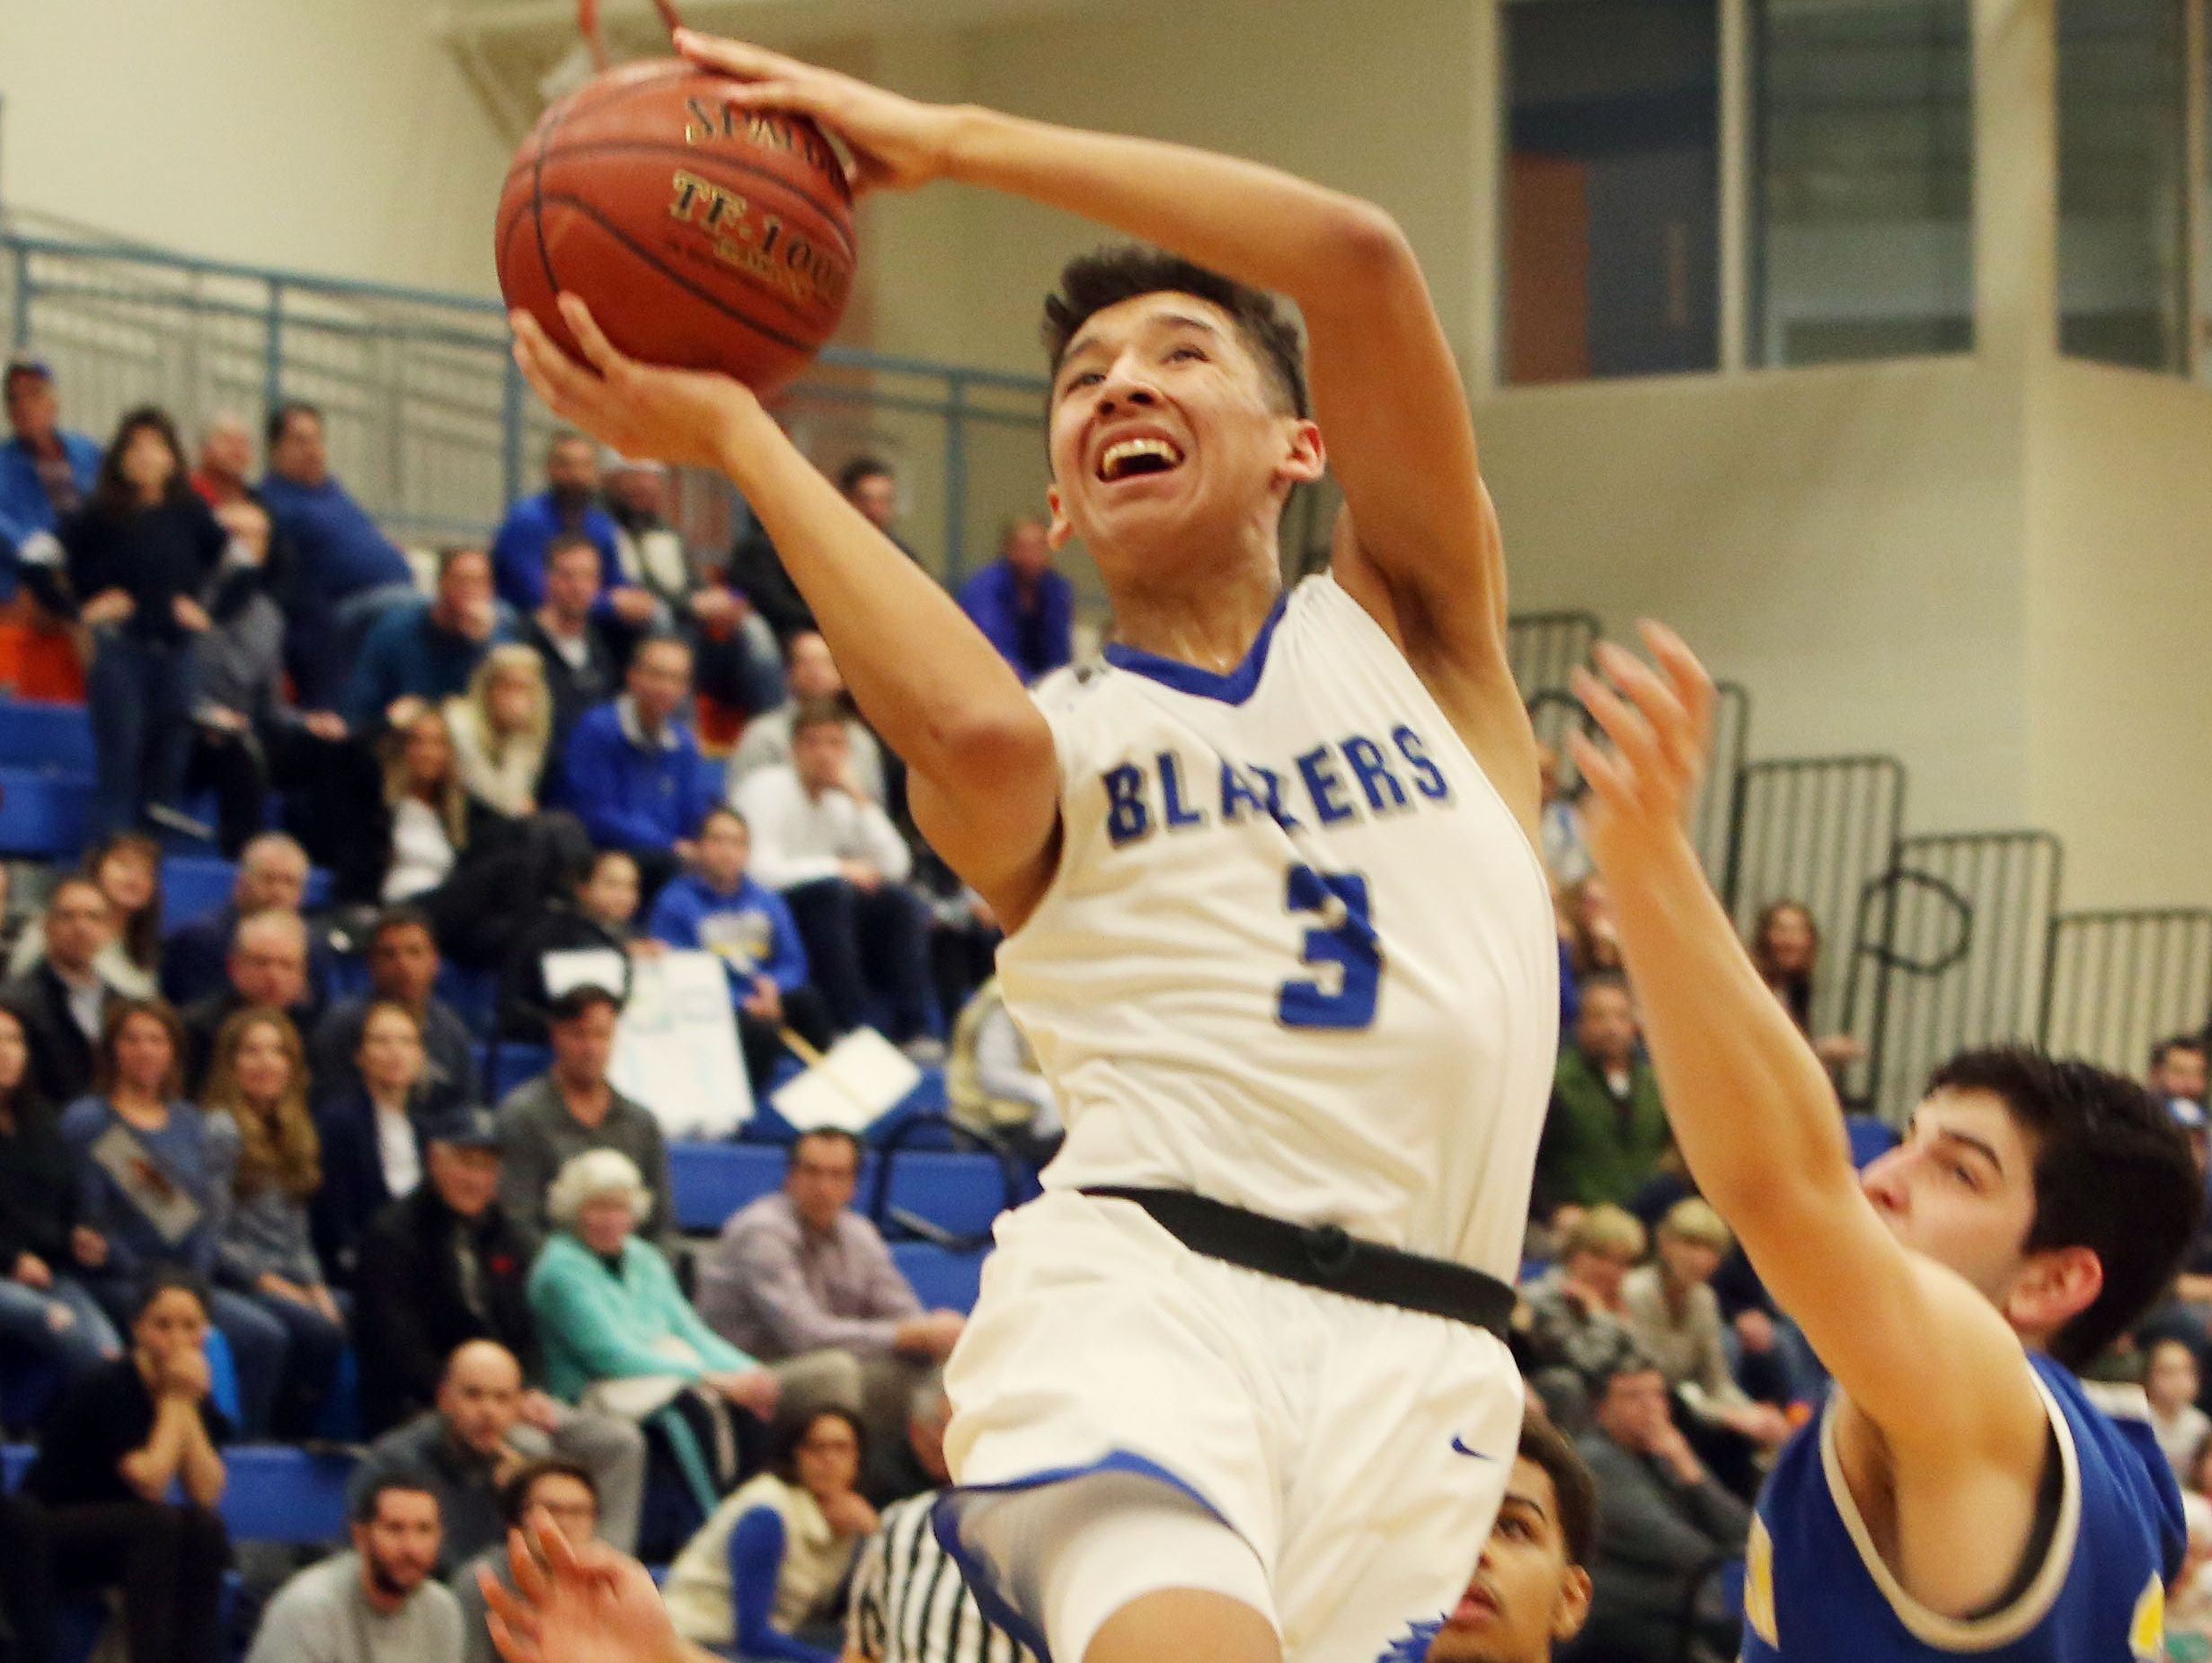 Millbrook High School's Humberto Cabrera drives to the basket against North Salem during a state regional semifinal at SUNY New Paltz on Tuesday.